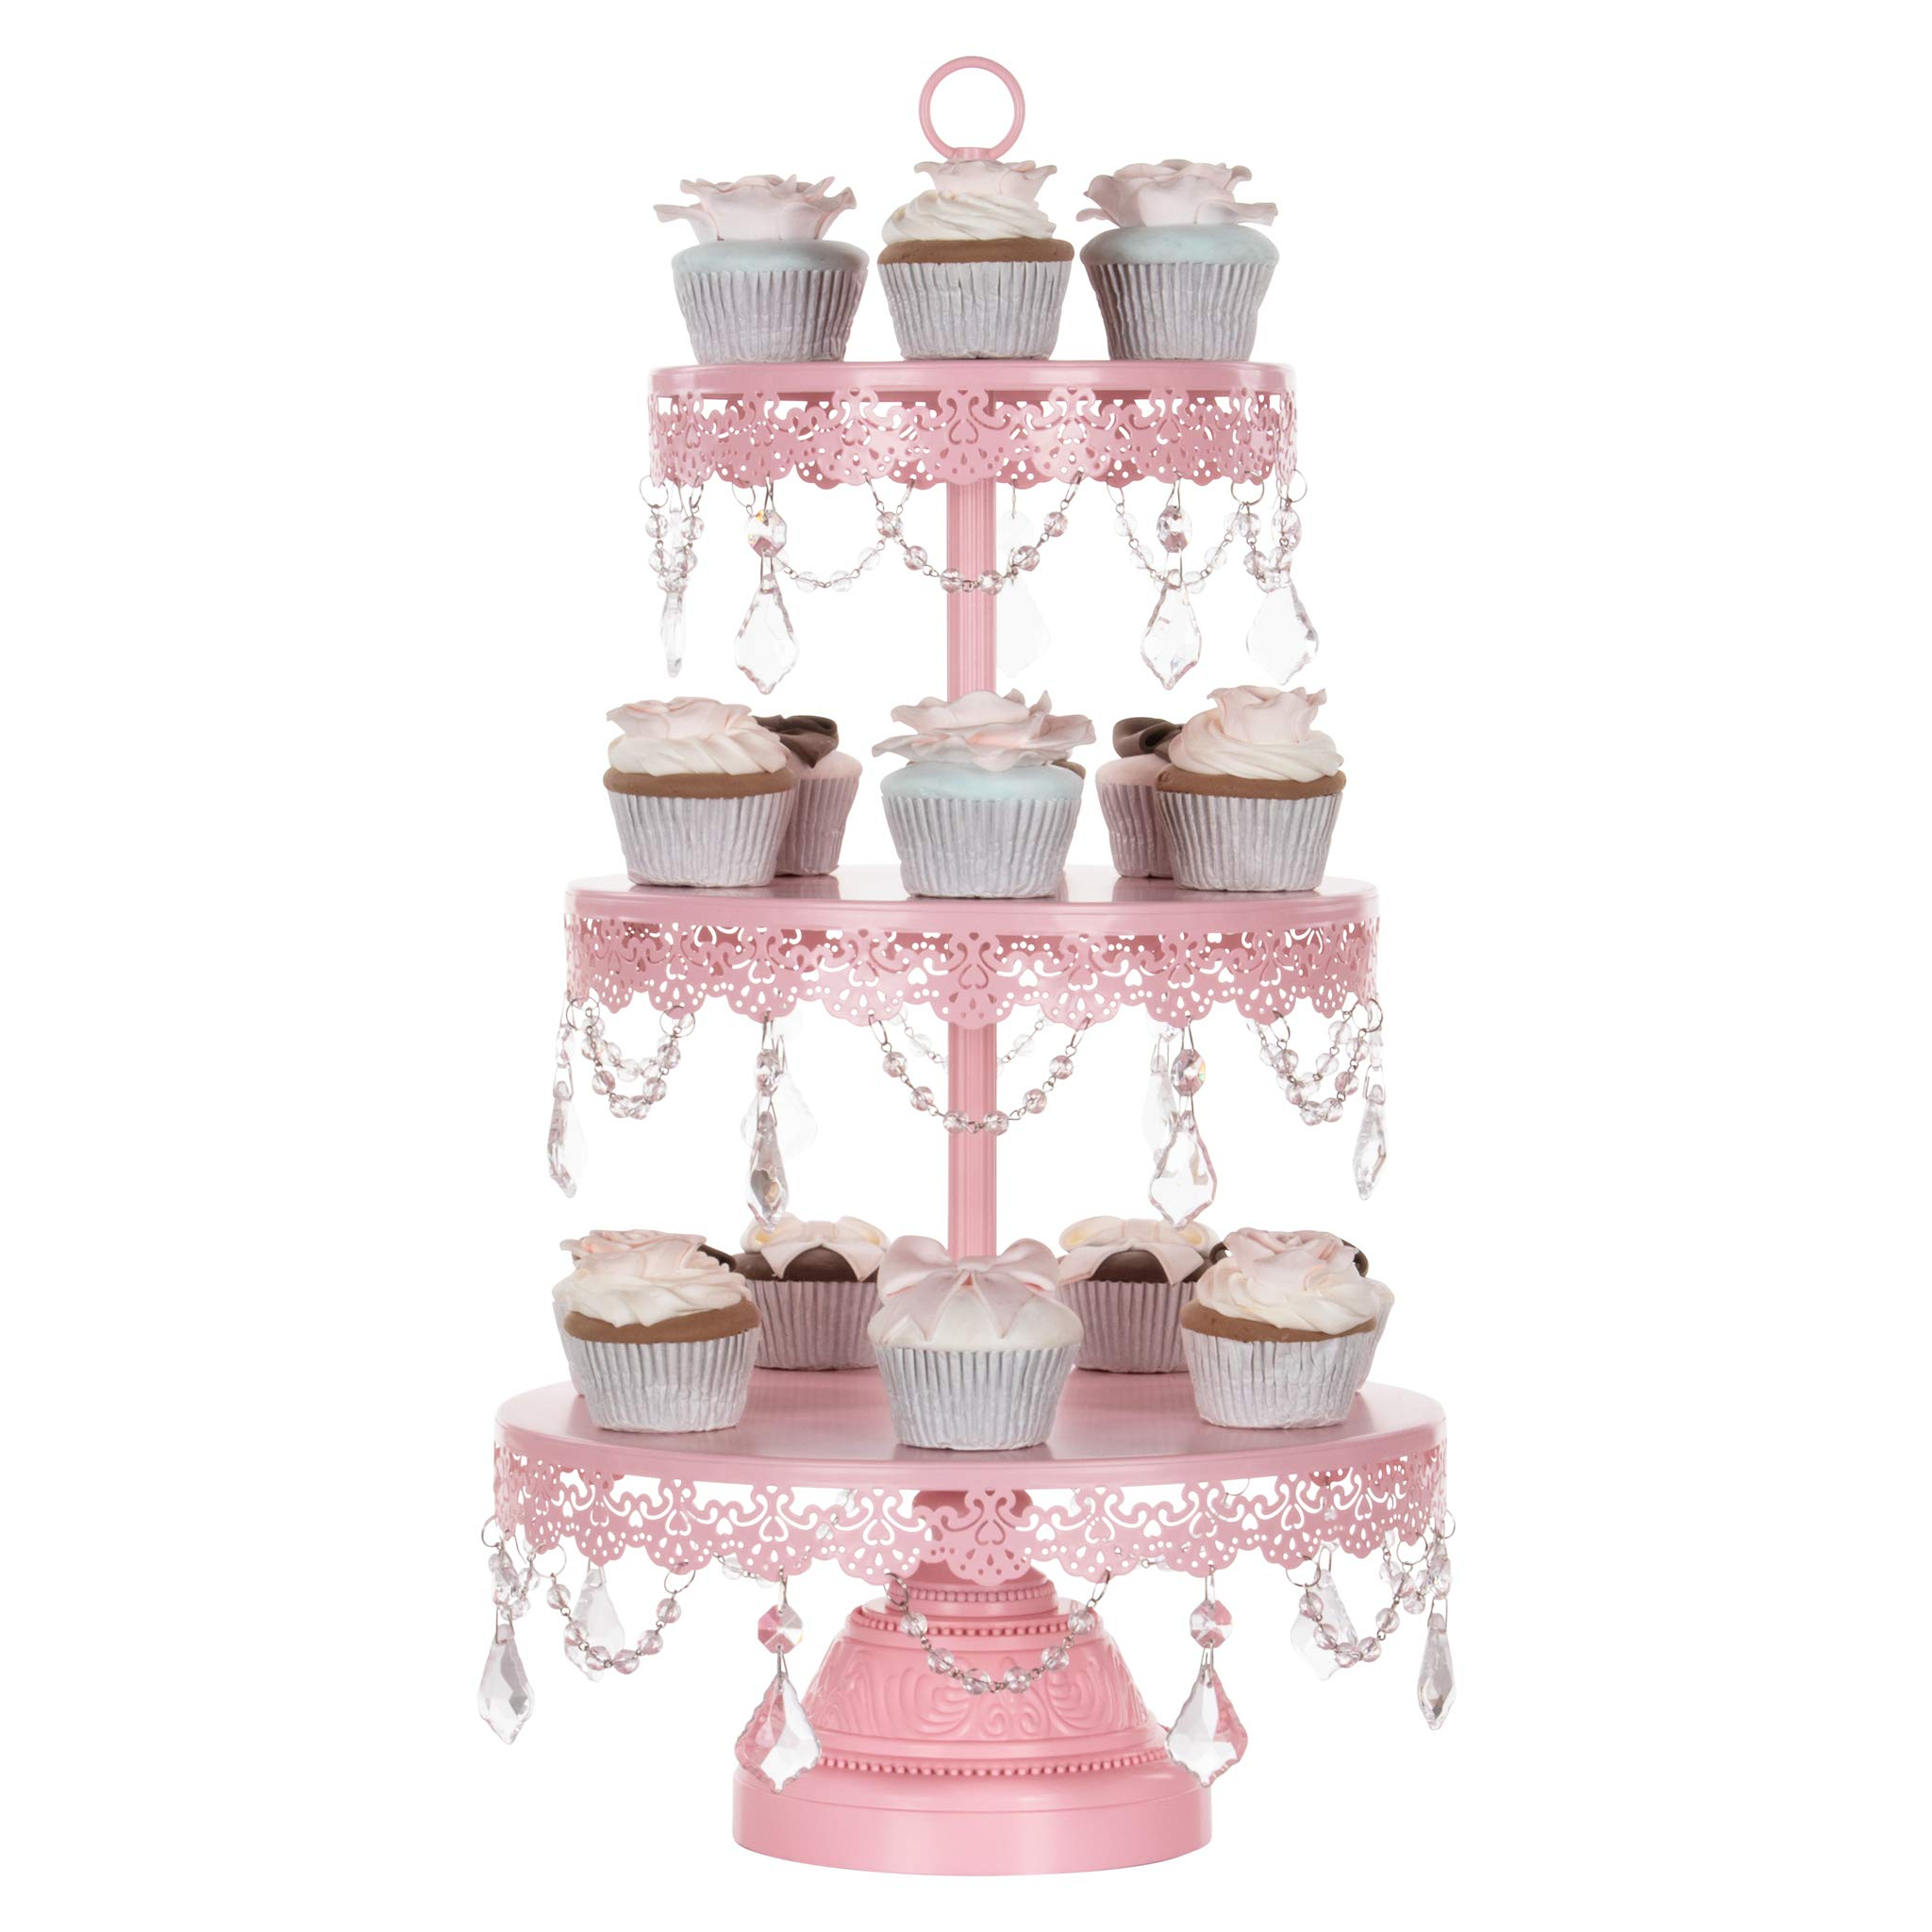 Amalfi Décor 3 Tier Dessert Cupcake Stand, Chic Glass Crystal Draped Metal Display Tower for Weddings Events Birthdays Party Plate Pedestal, Sophia Collection (Pink) by Amalfi Décor (Image #2)